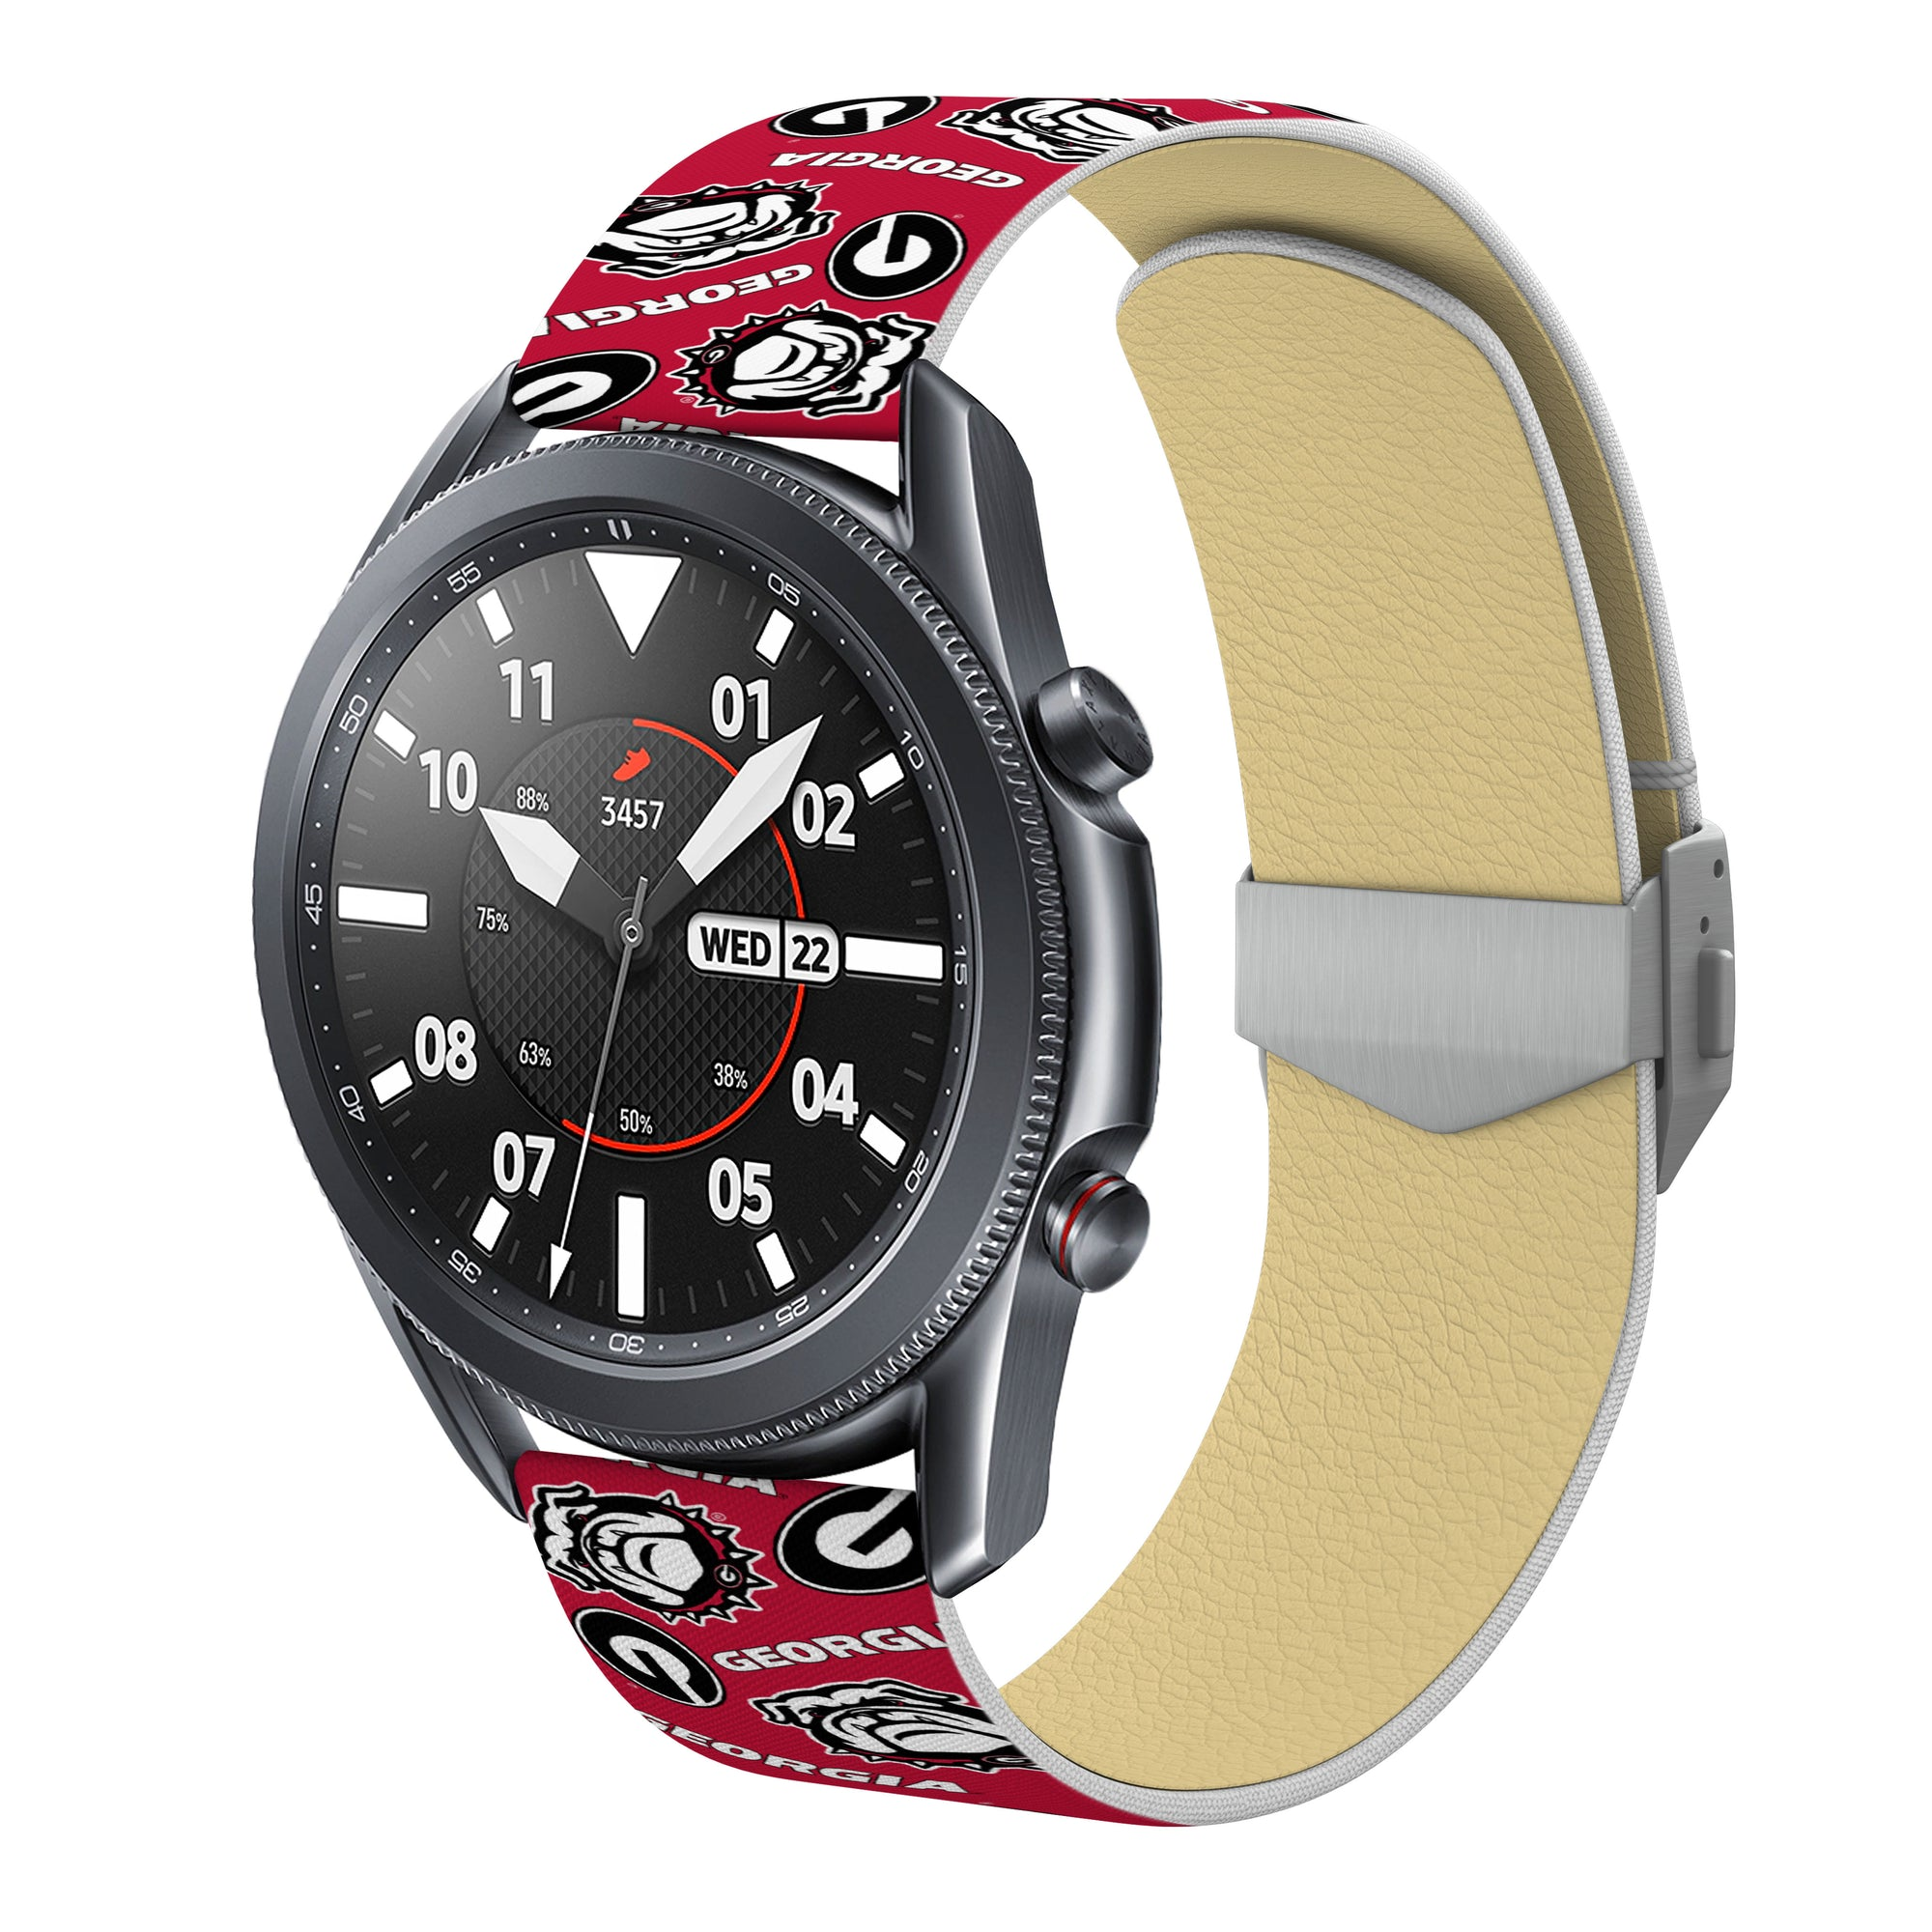 Georgia Bulldogs Full Print Quick Change Watch Band With Engraved Buckle - AffinityBands